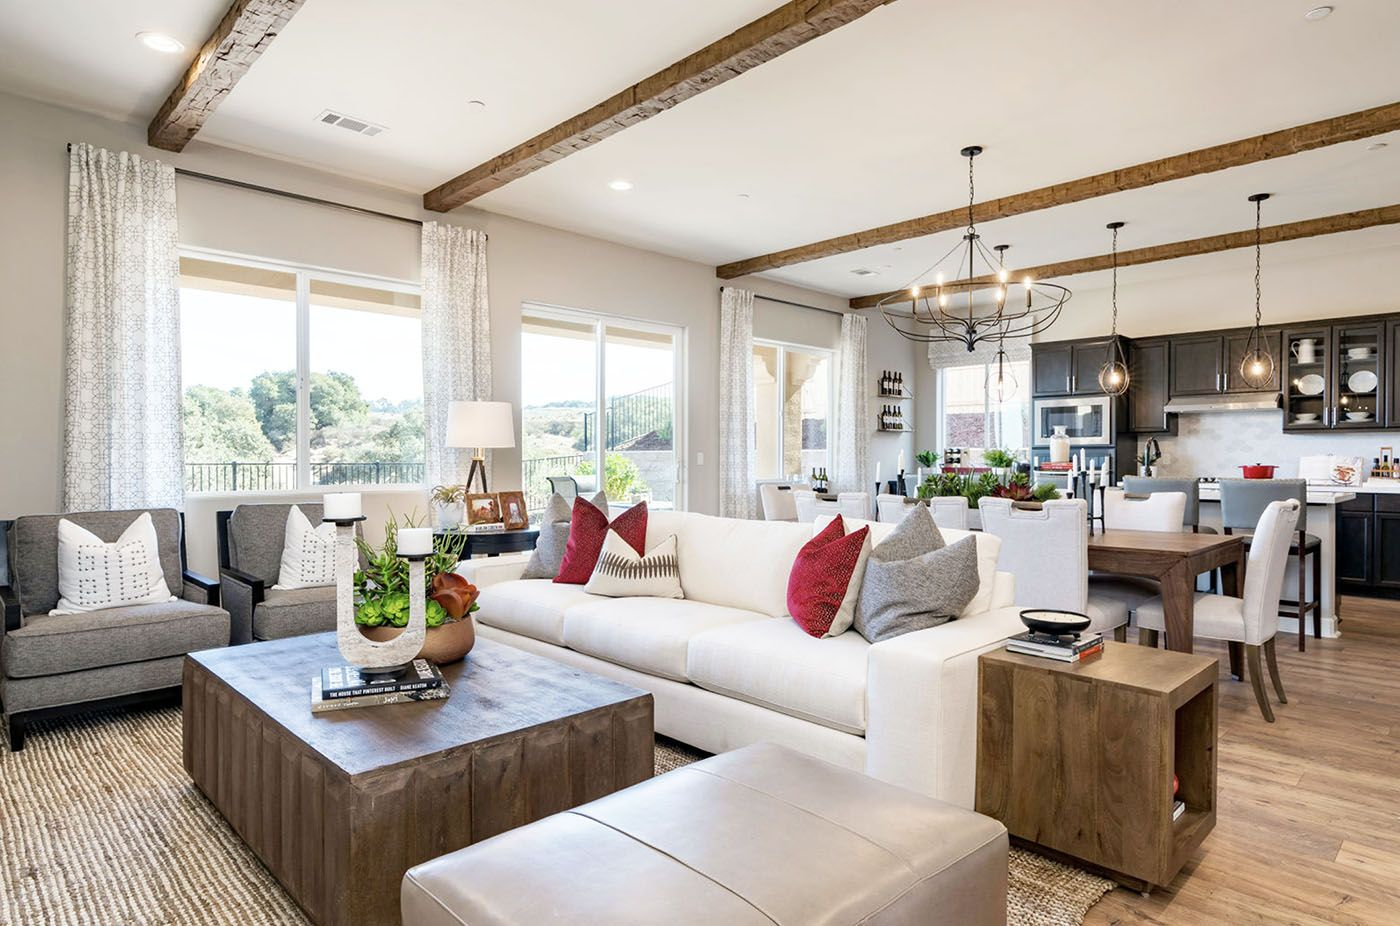 Living Area featured in the Ashford By Coastal Community Builders in Santa Barbara, CA